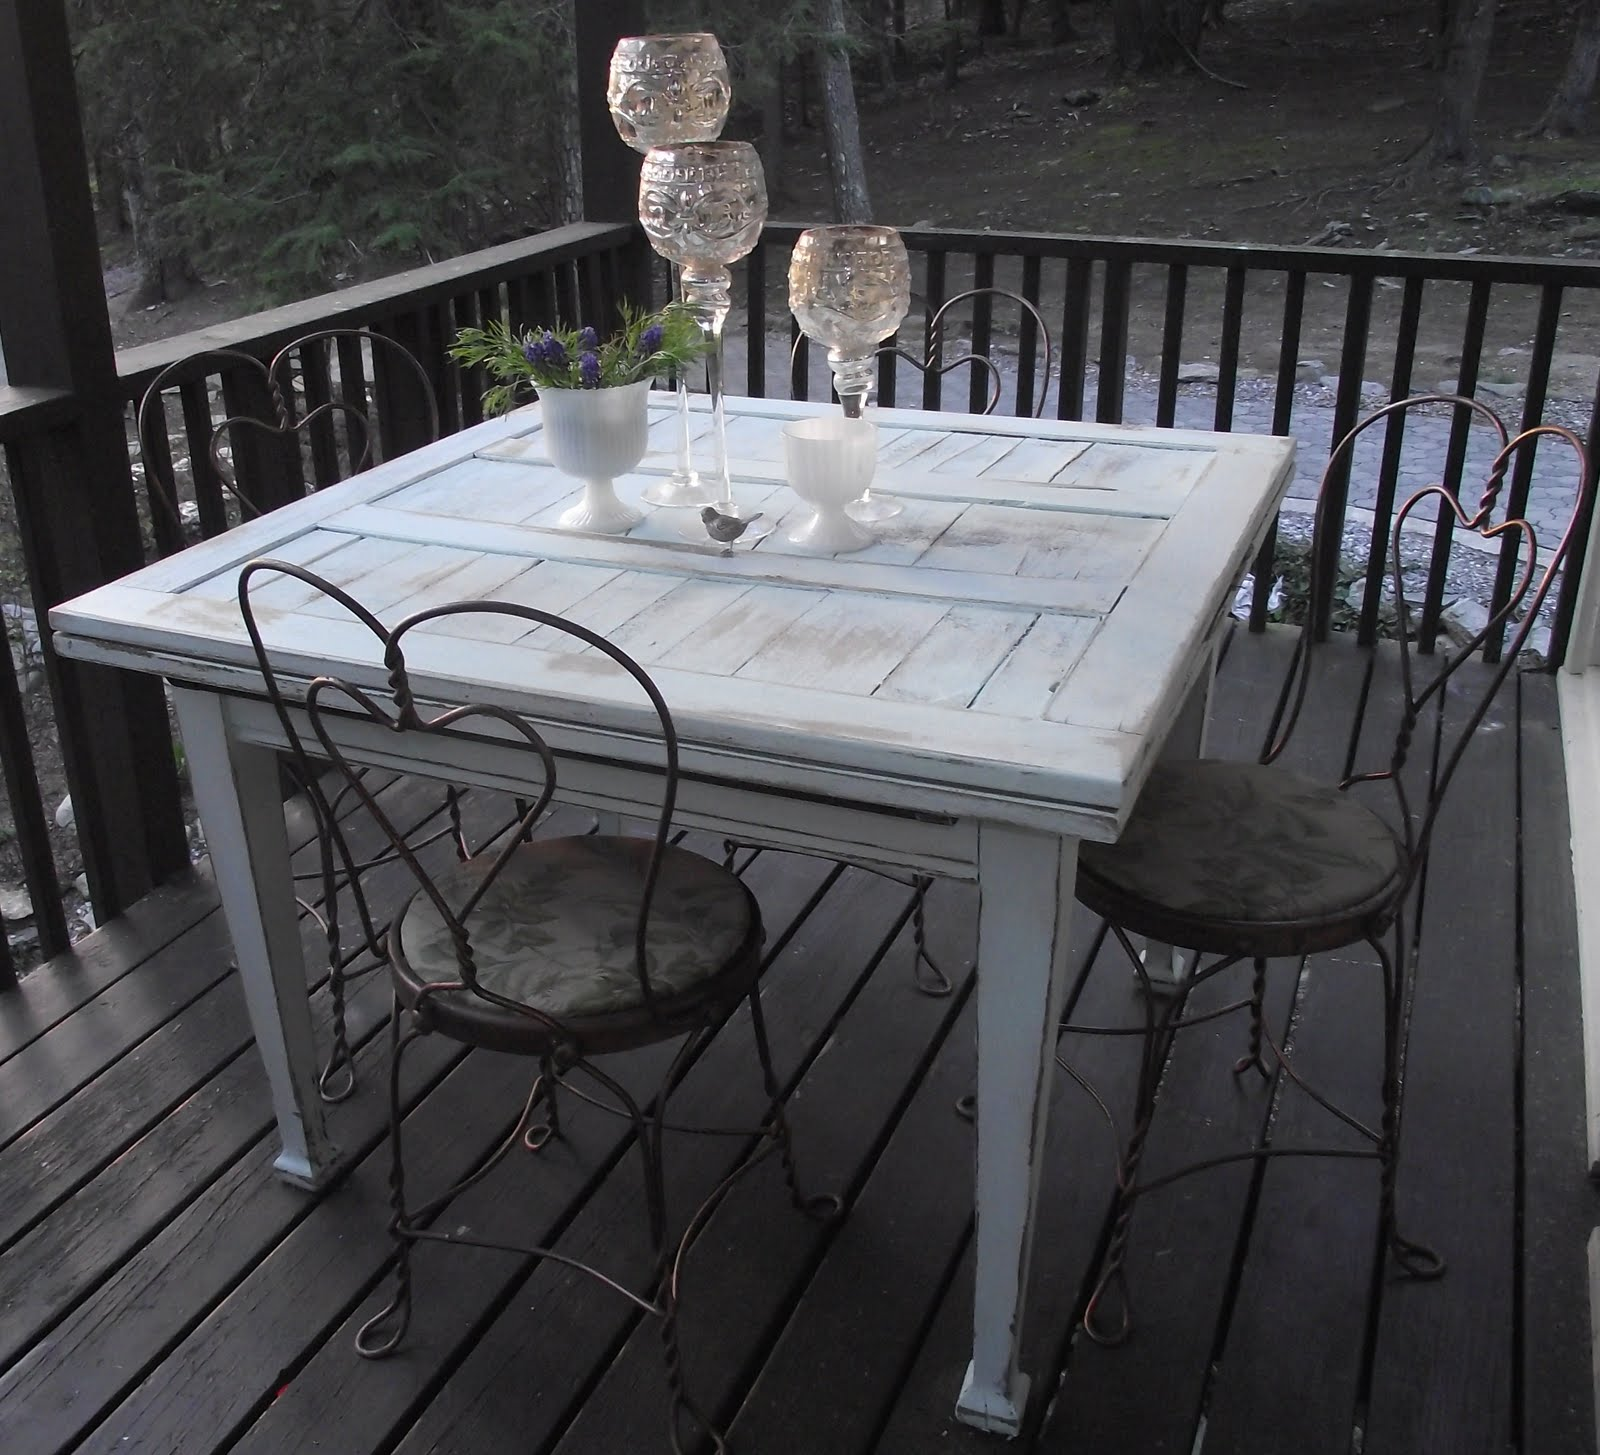 Serendipity Chic Design Refinished shabby chic table and ice